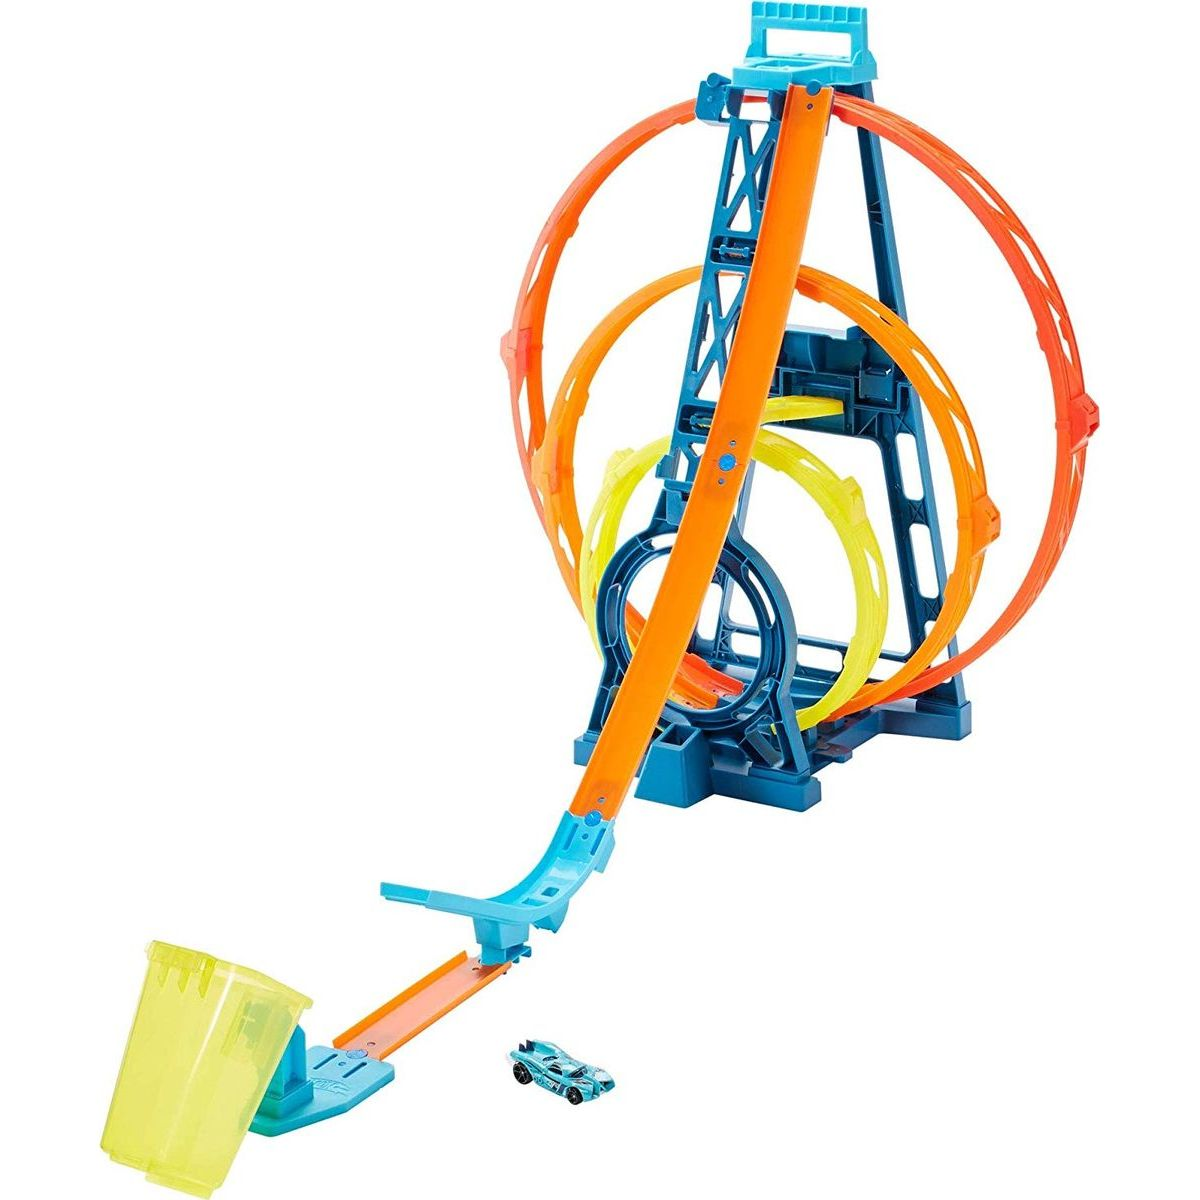 Mattel Hot Wheels track builder trojitá smyčka